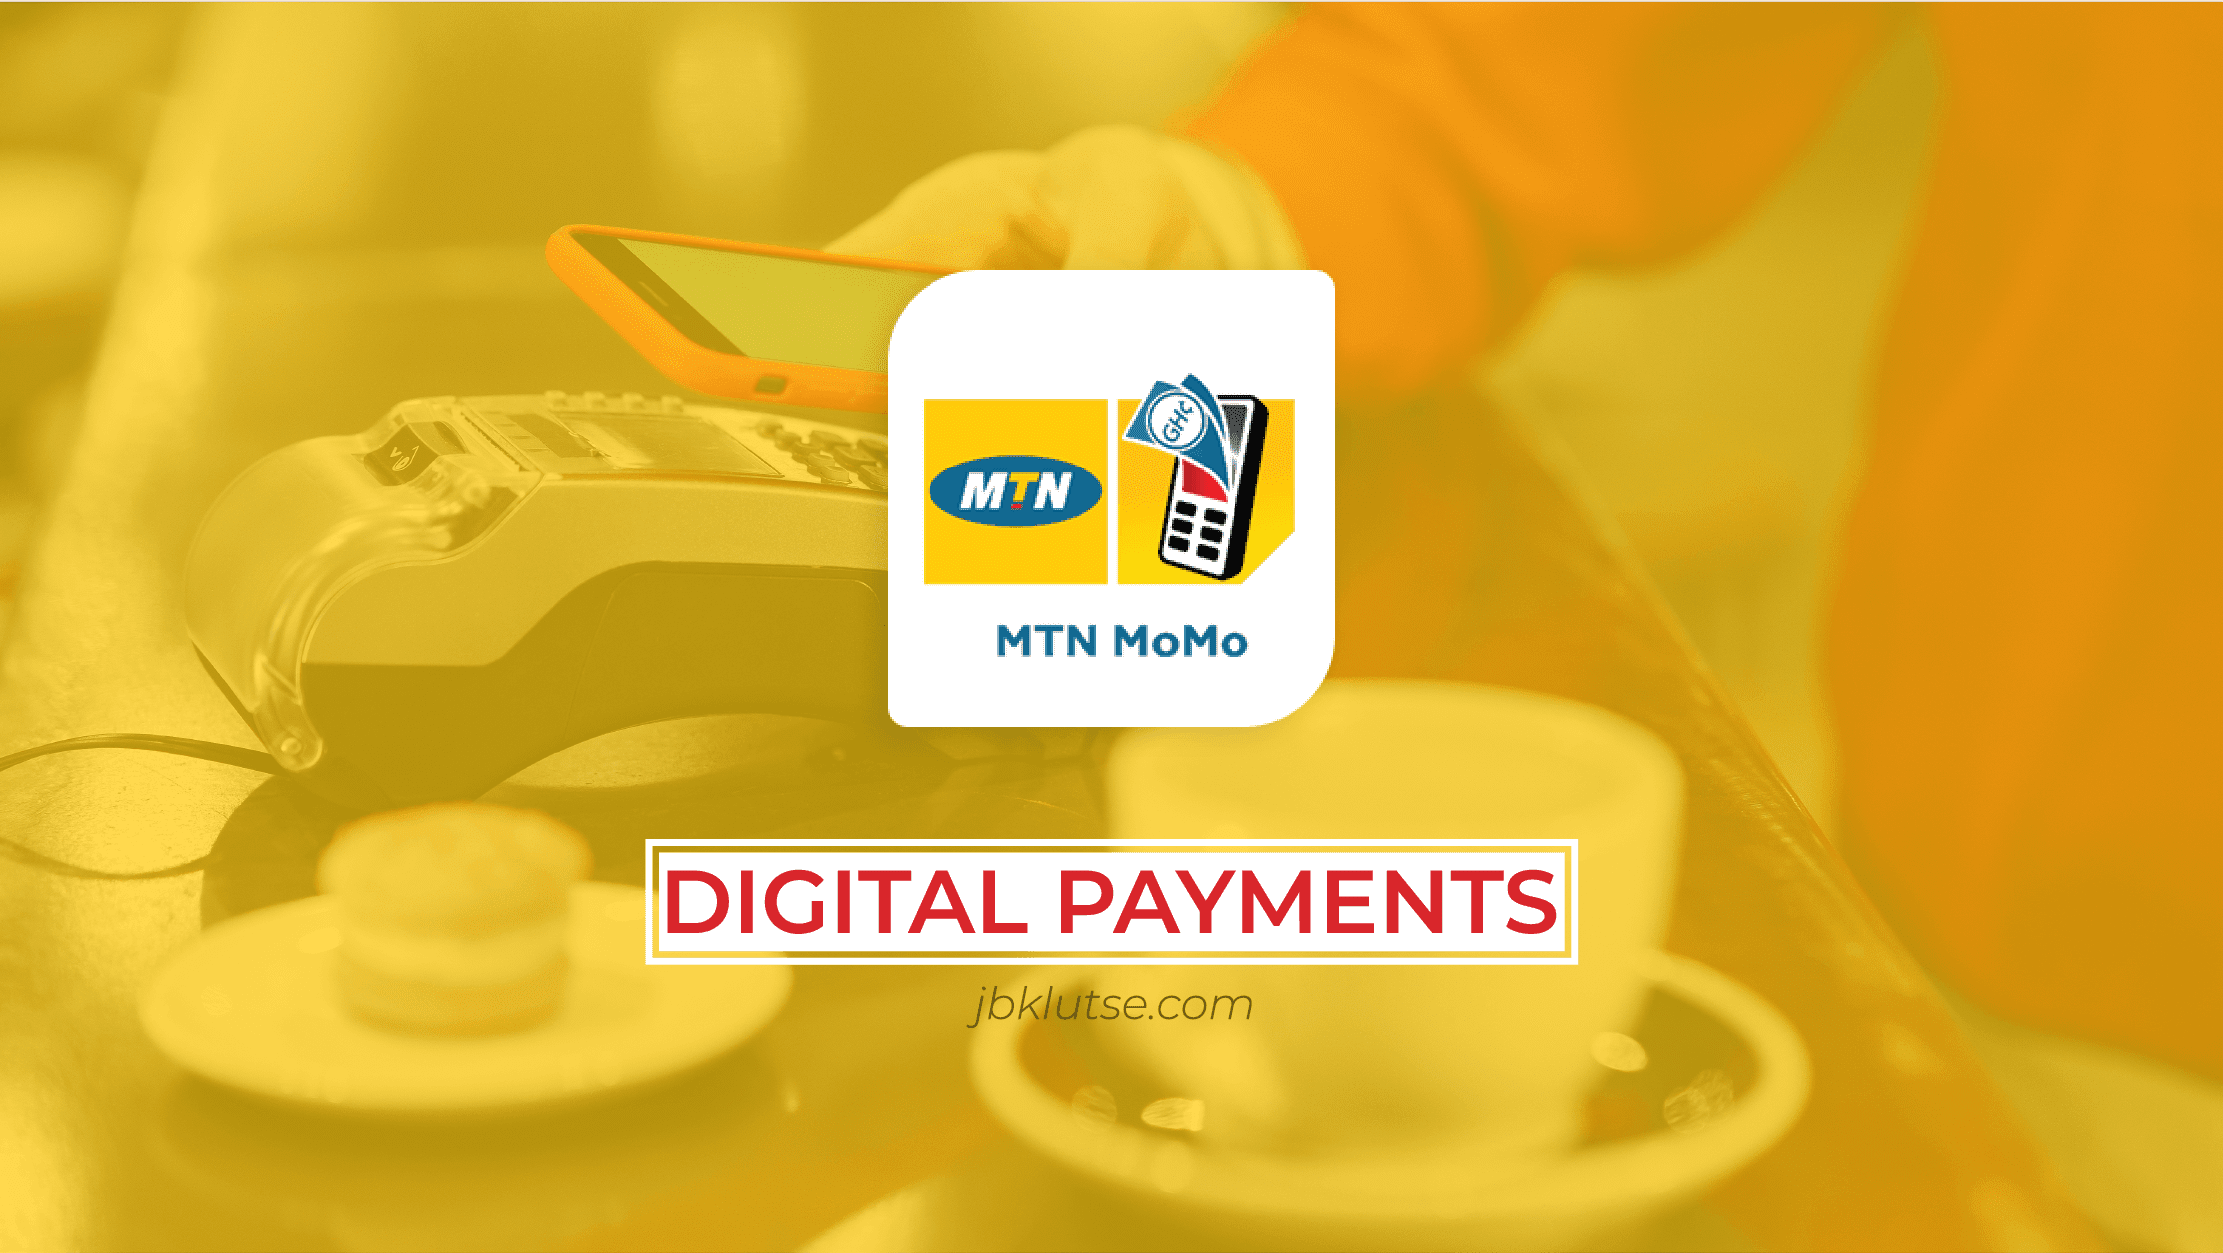 MTN MoMo: The need for digital payments in a Covid-19 impacted world